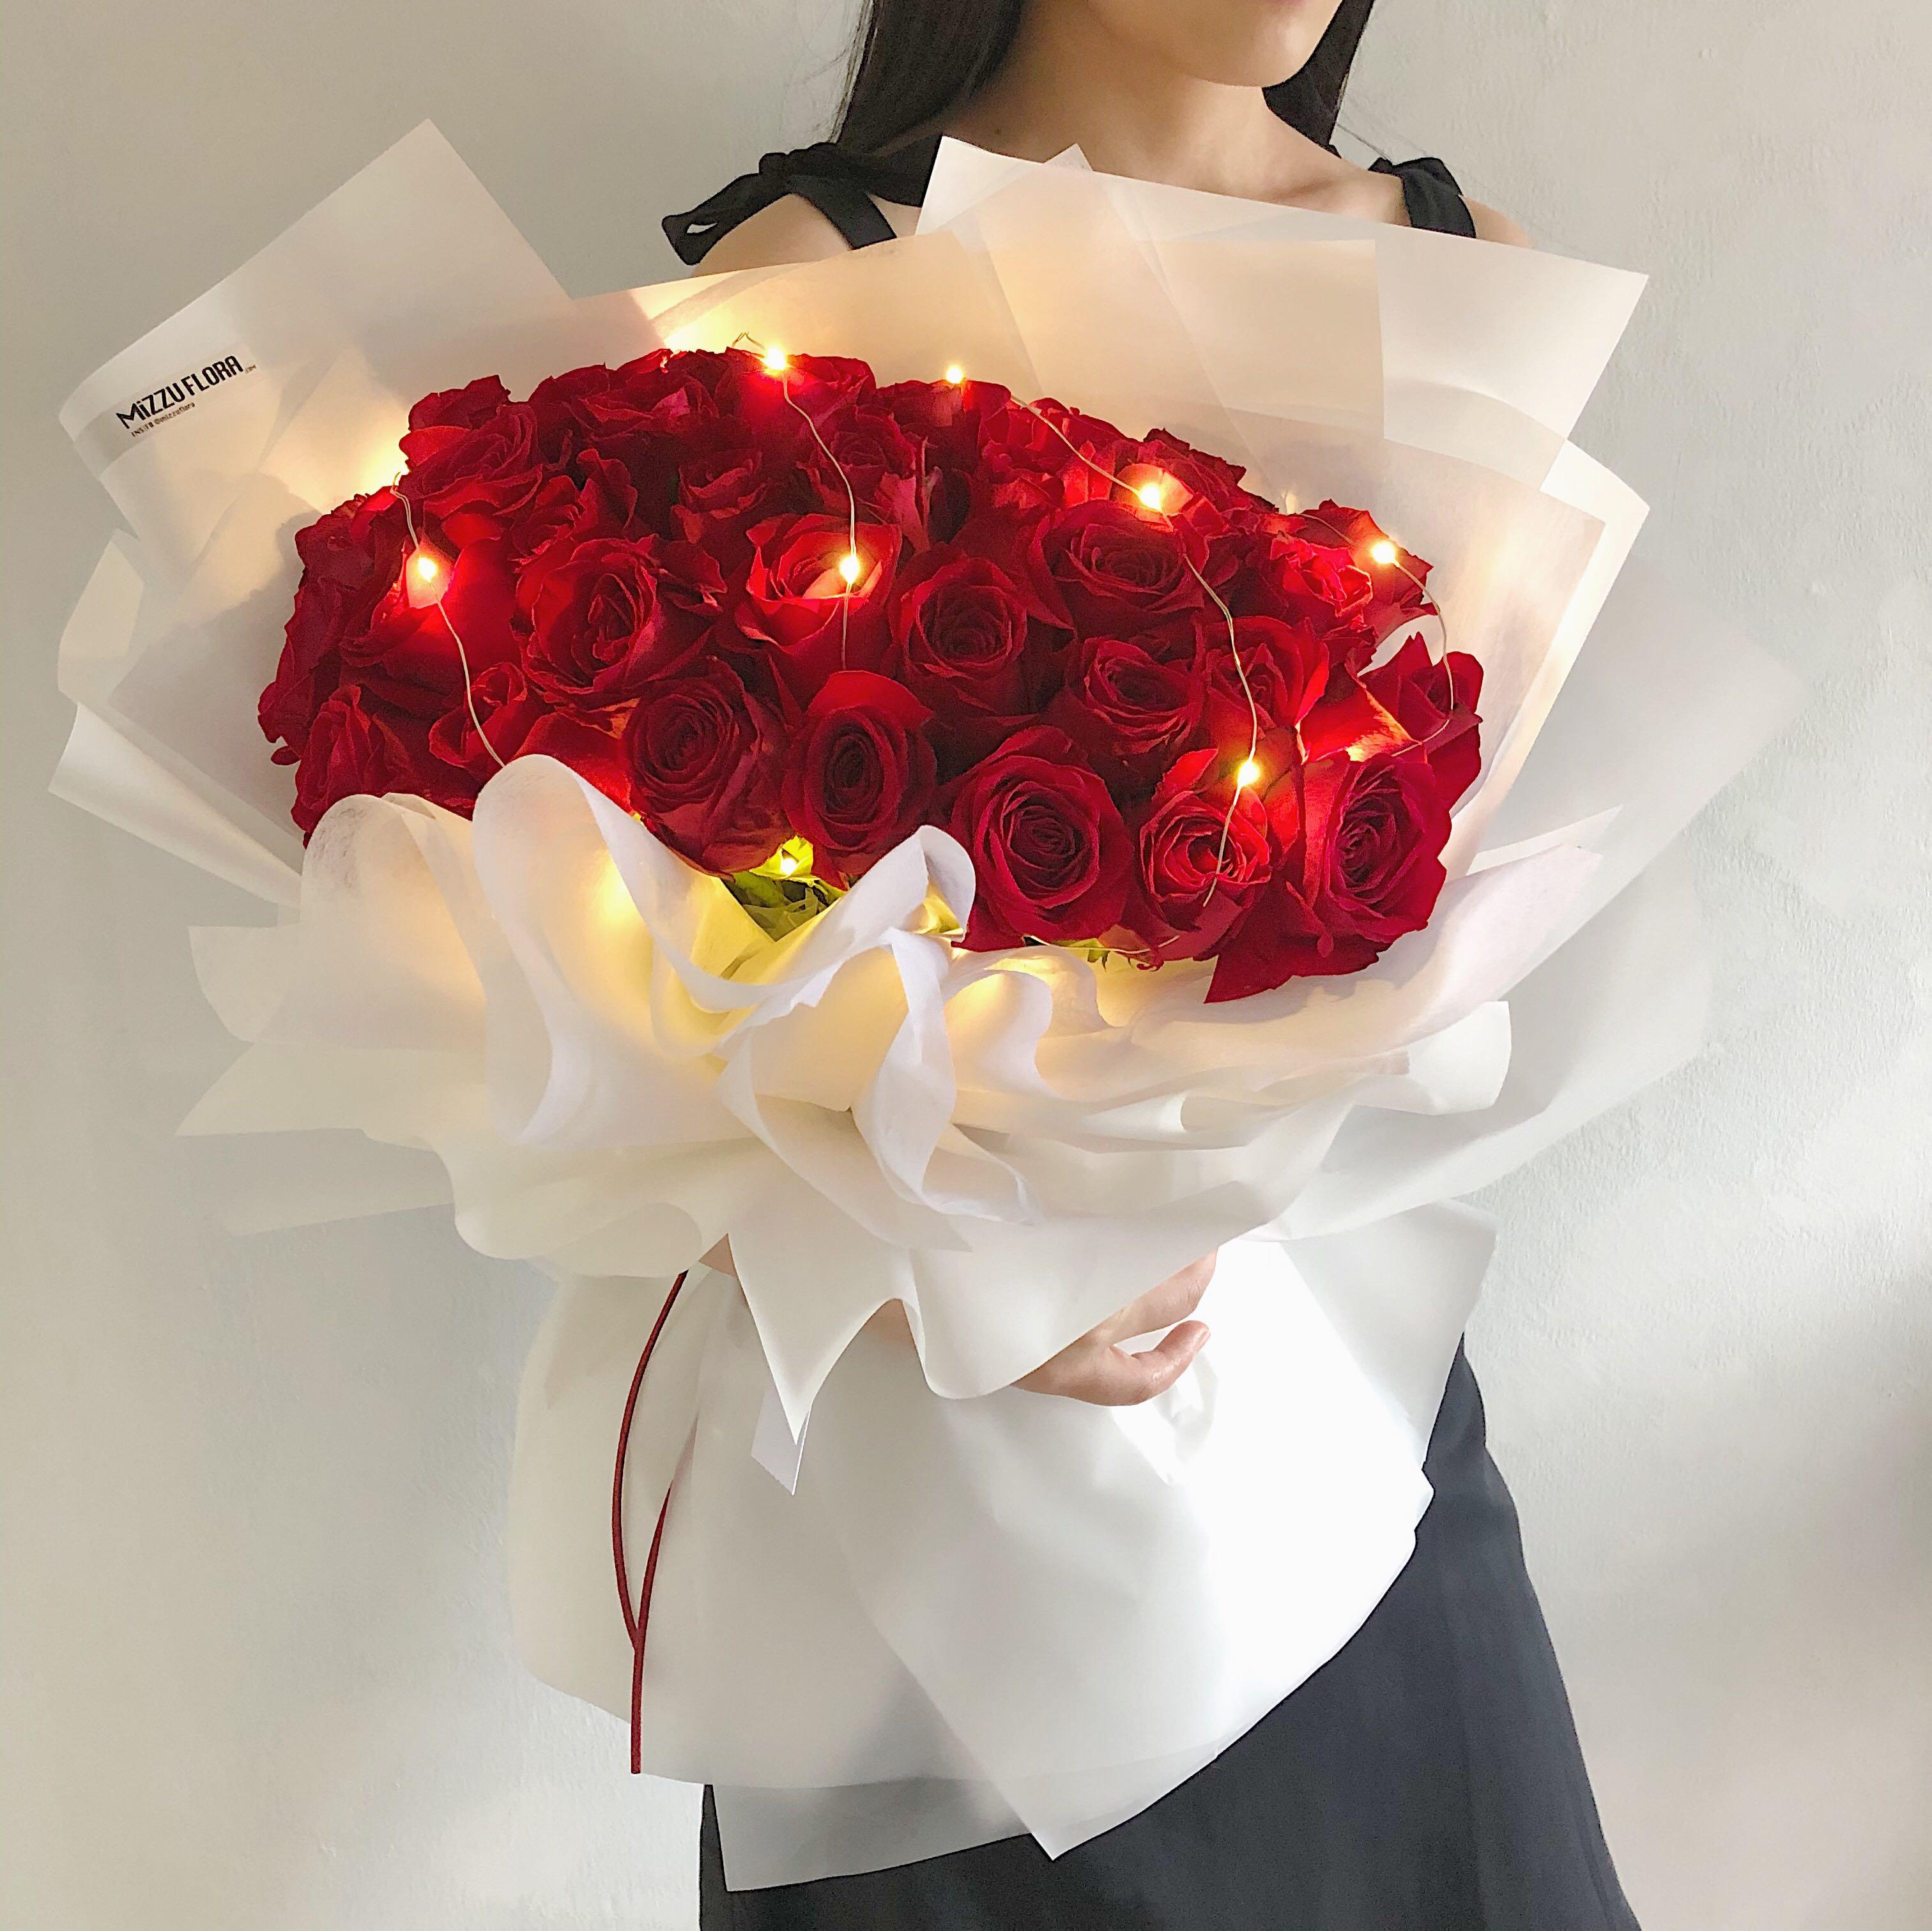 Proposal Bouquet 40 Roses Rose Bouquet 52 Roses 99 Roses Birthday Flower Bouquet Gardening Flowers Bouquets On Carousell